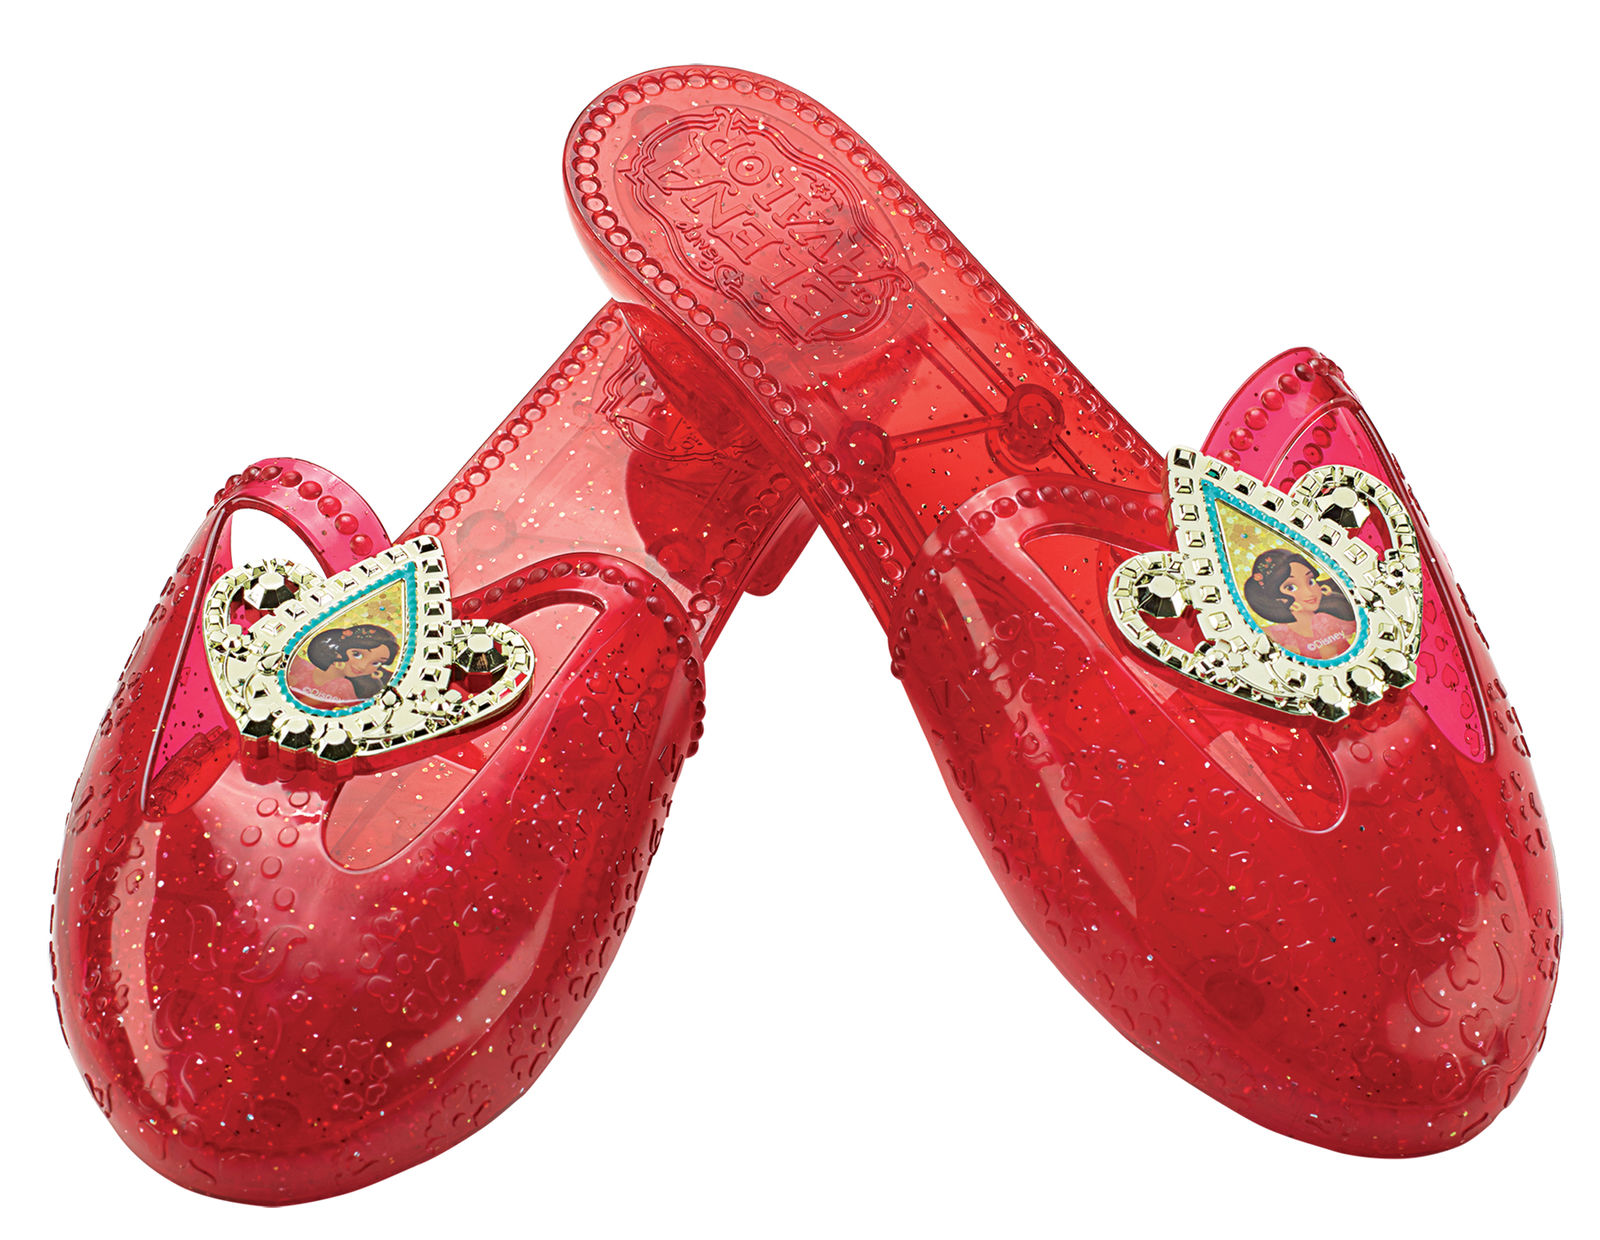 dbed60876464 Disney Elena of Avalor Ruber Red Jelly Shoes Princess Girls Costume ...